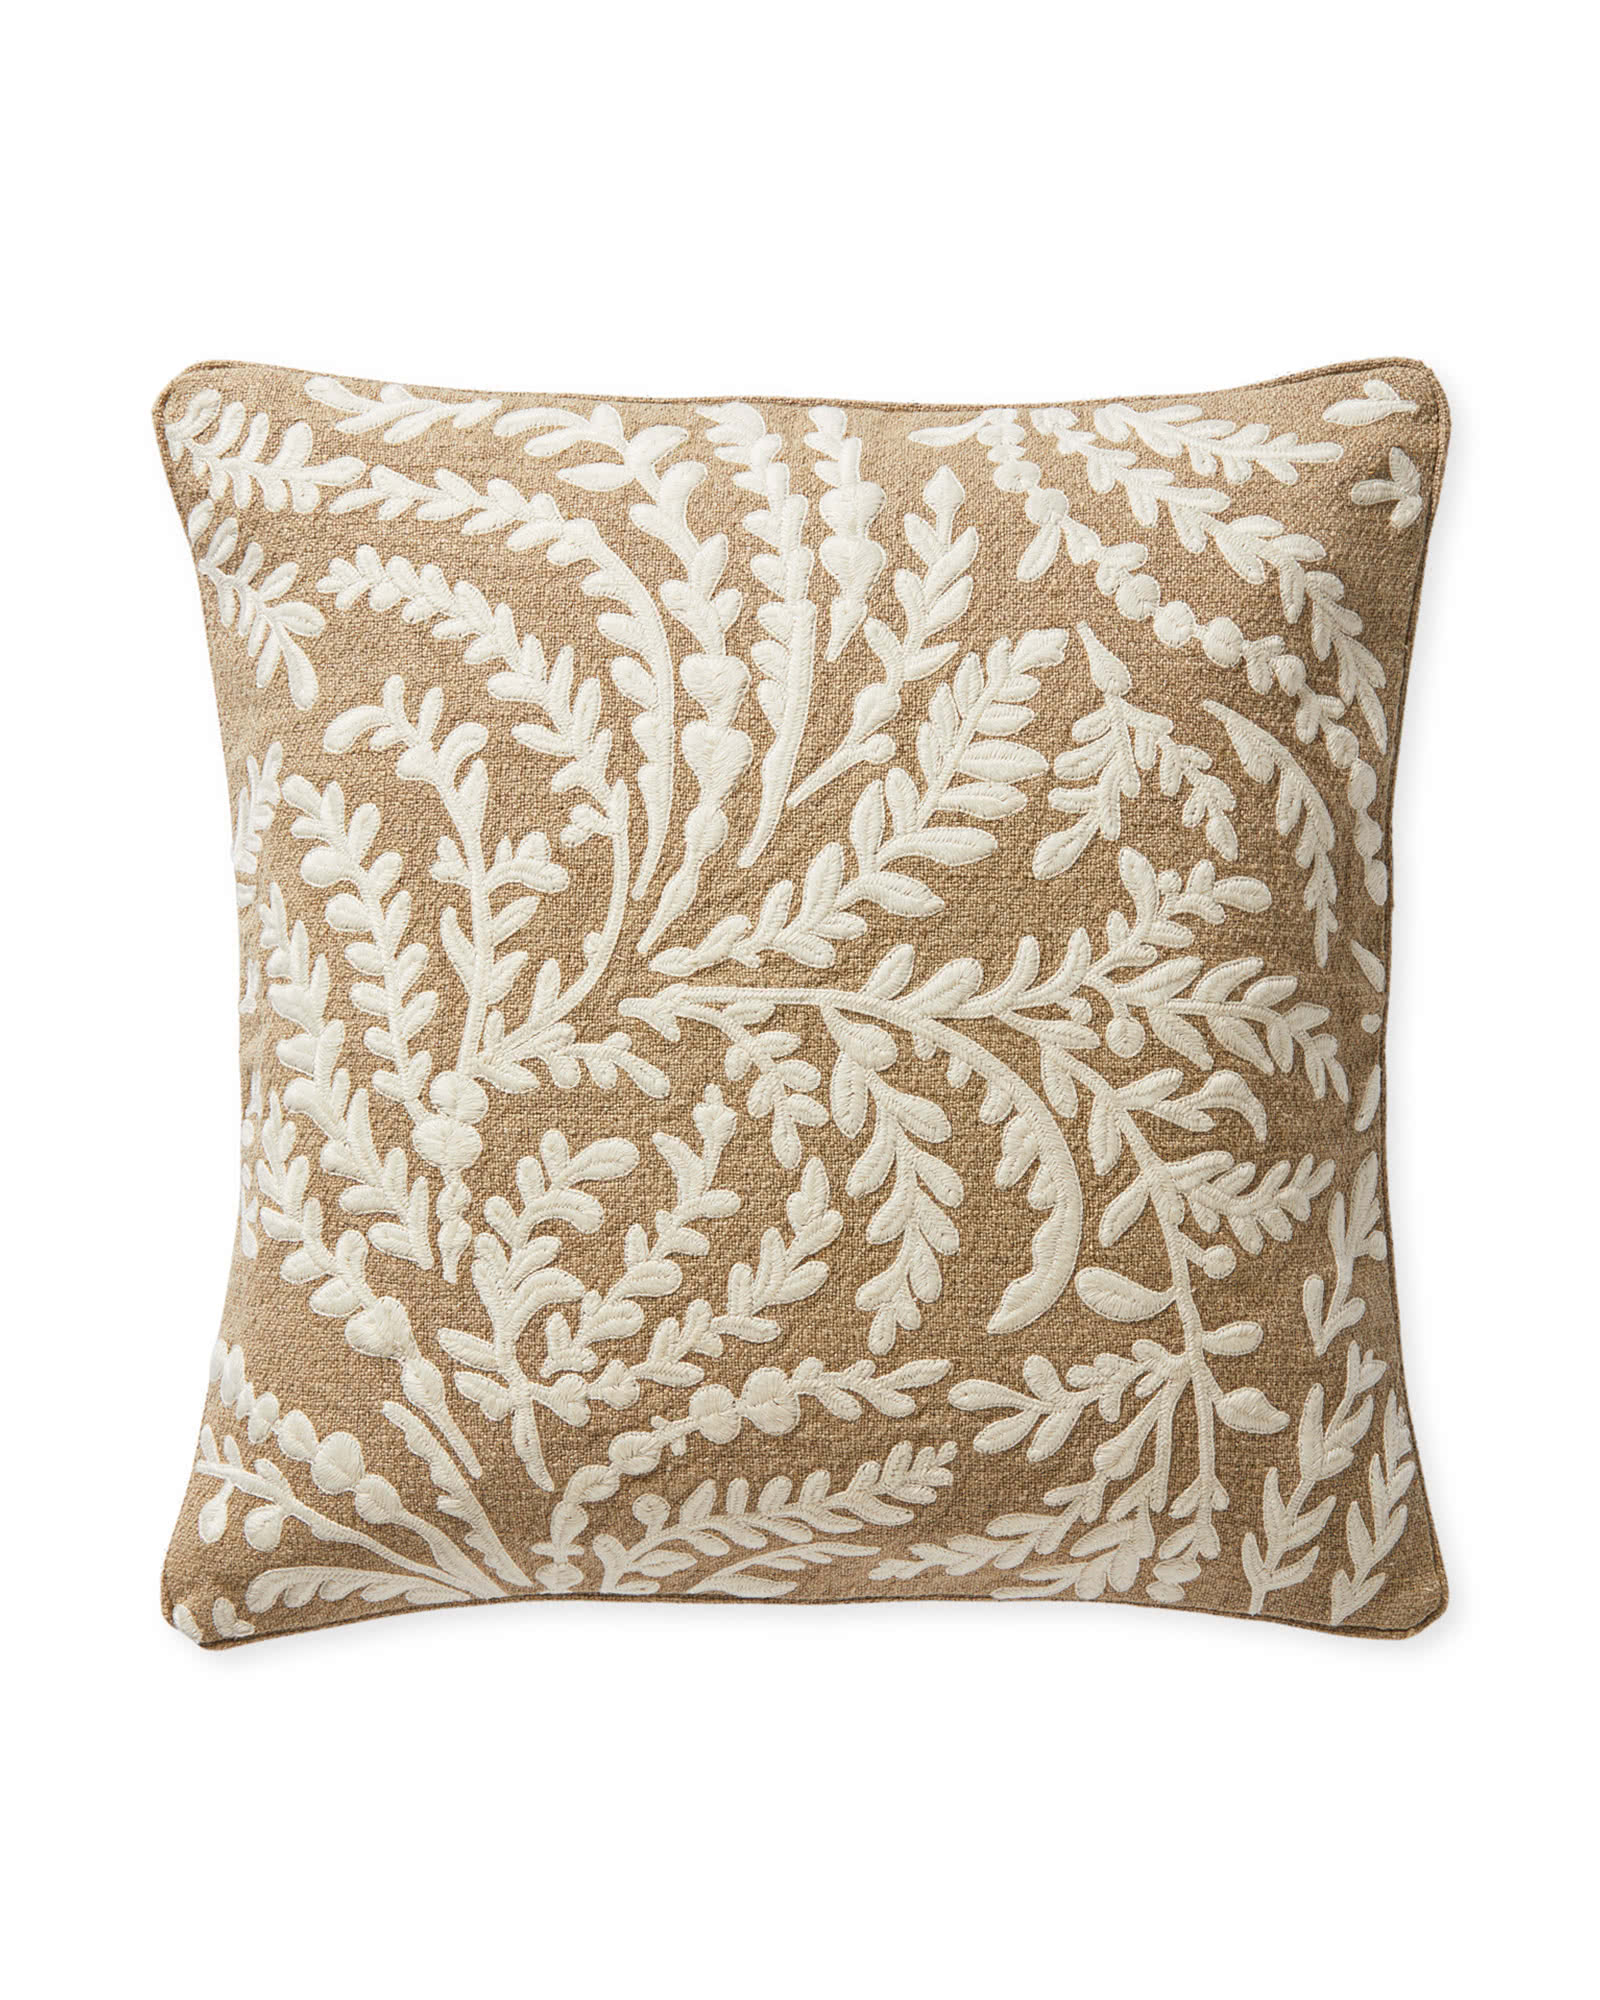 deal of the day: add a pop of pattern to any sofa with this  embroidered pillow !